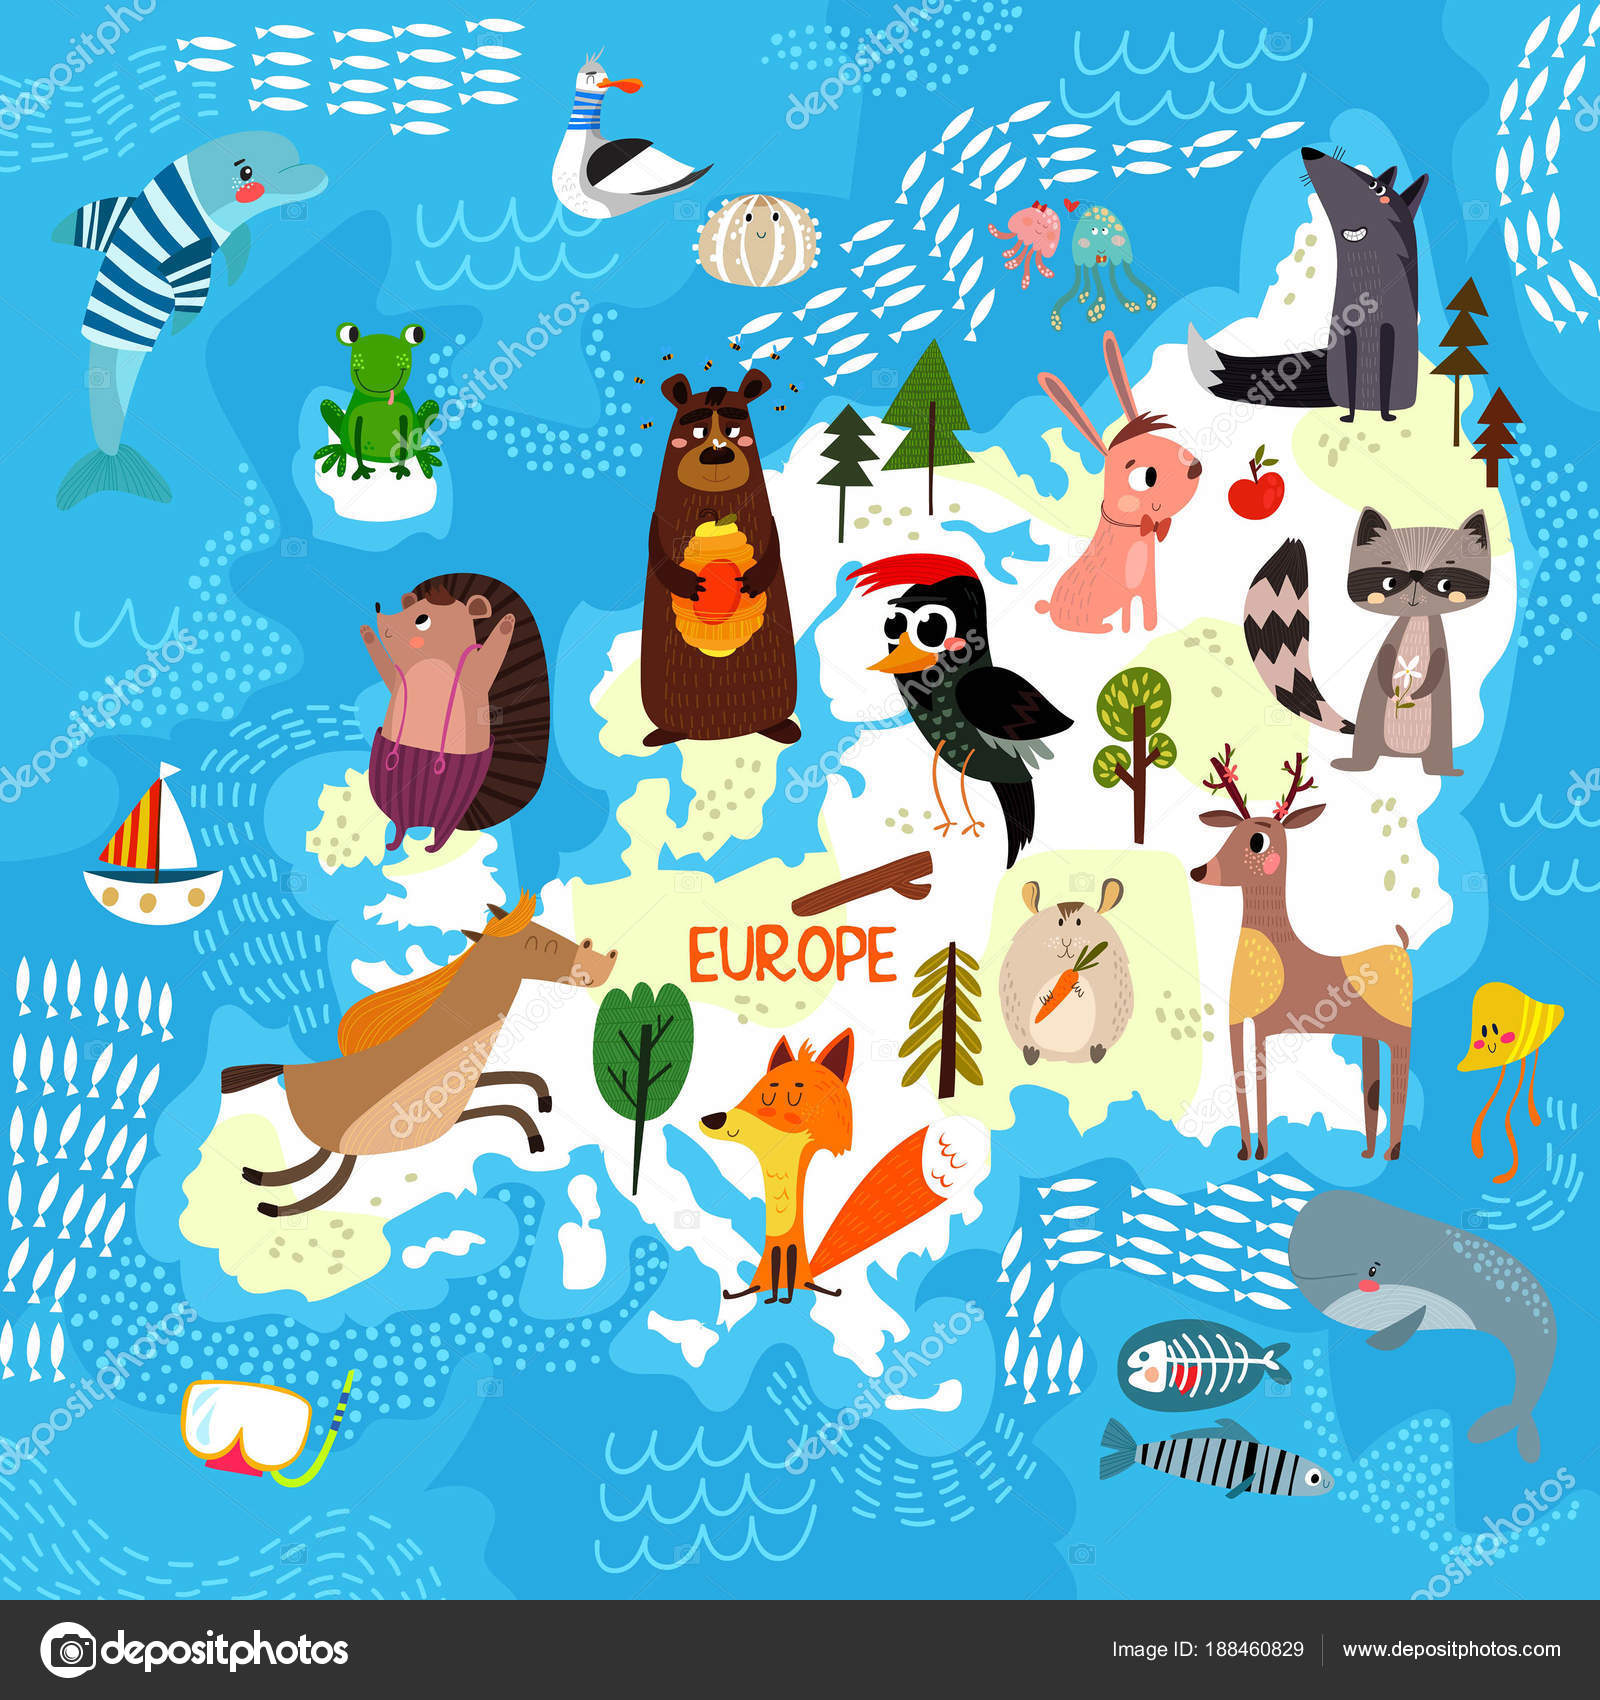 Cartoon world map with traditional animals illustrated map of e cartoon world map with traditional animals illustrated map of europector illustration for children preschool education and kids design stock vector gumiabroncs Images